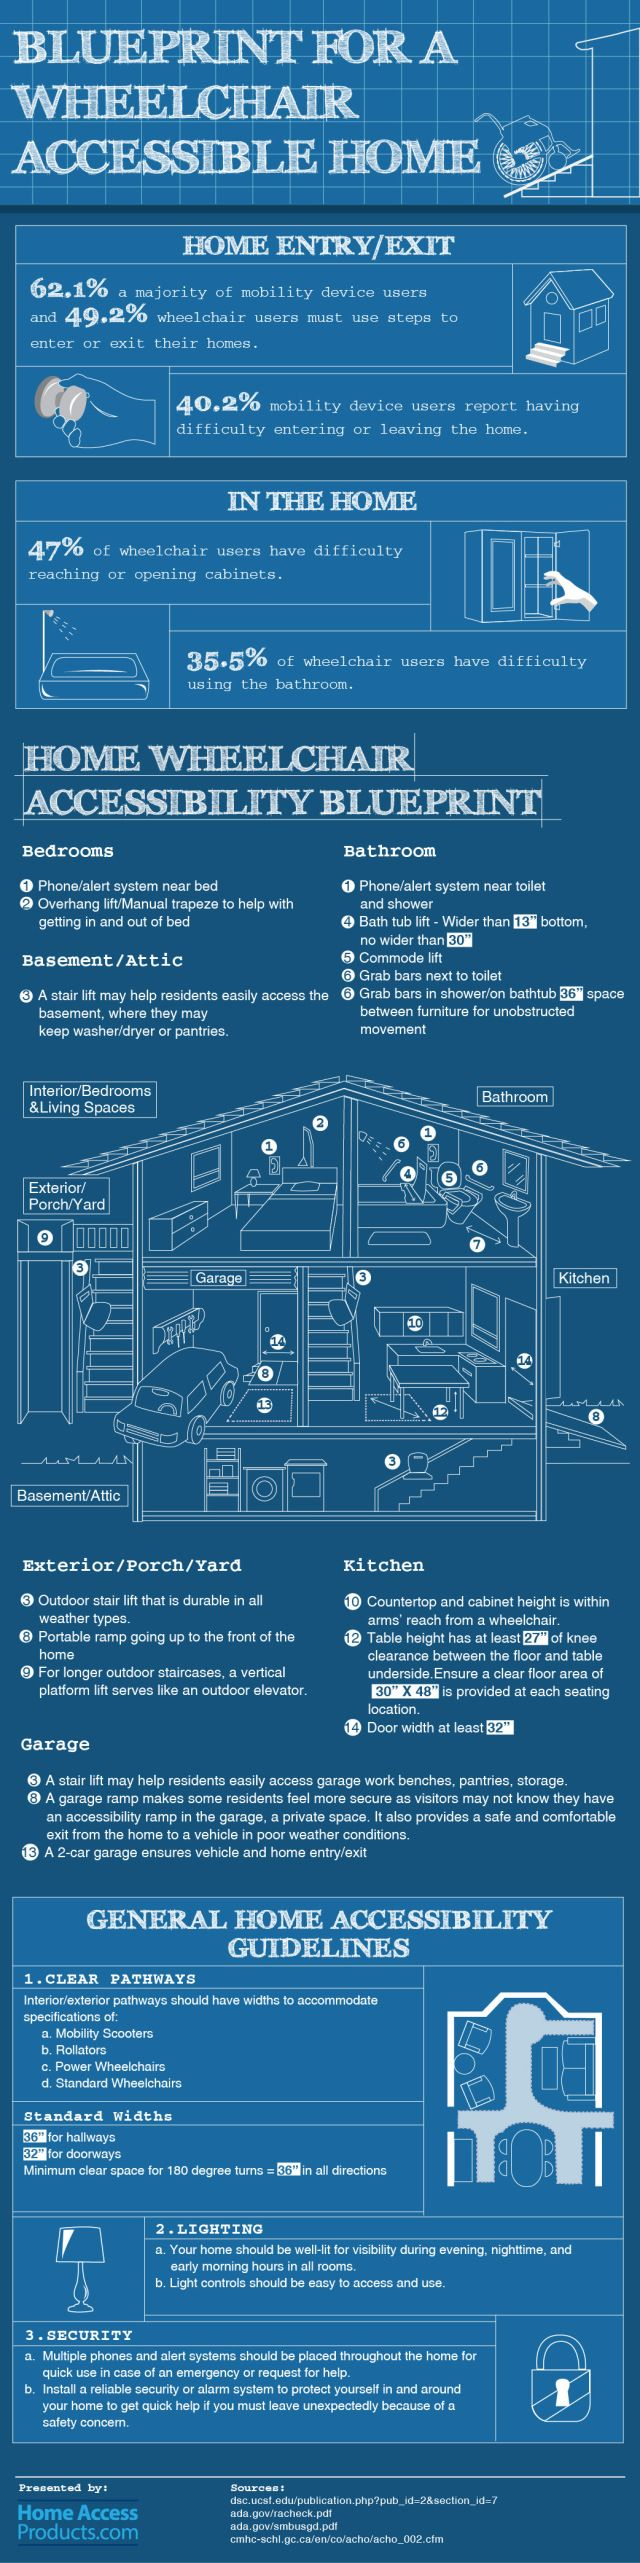 1781 best floorplans to cherry pick images on pinterest house